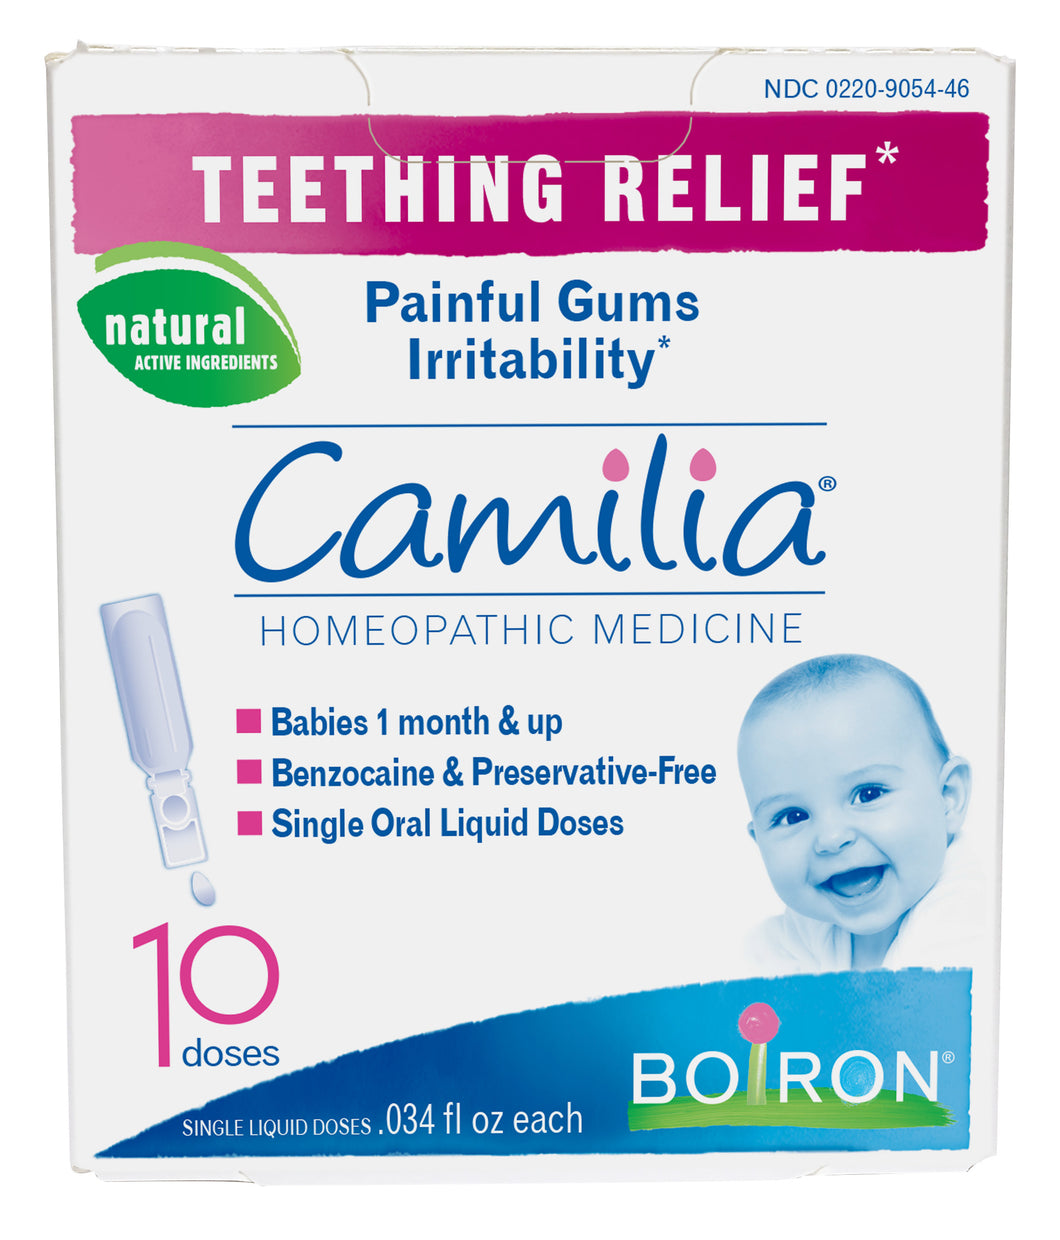 Teething Relief Homeopathic Medicine - 10 Doses (10 x 0.34 fl oz)